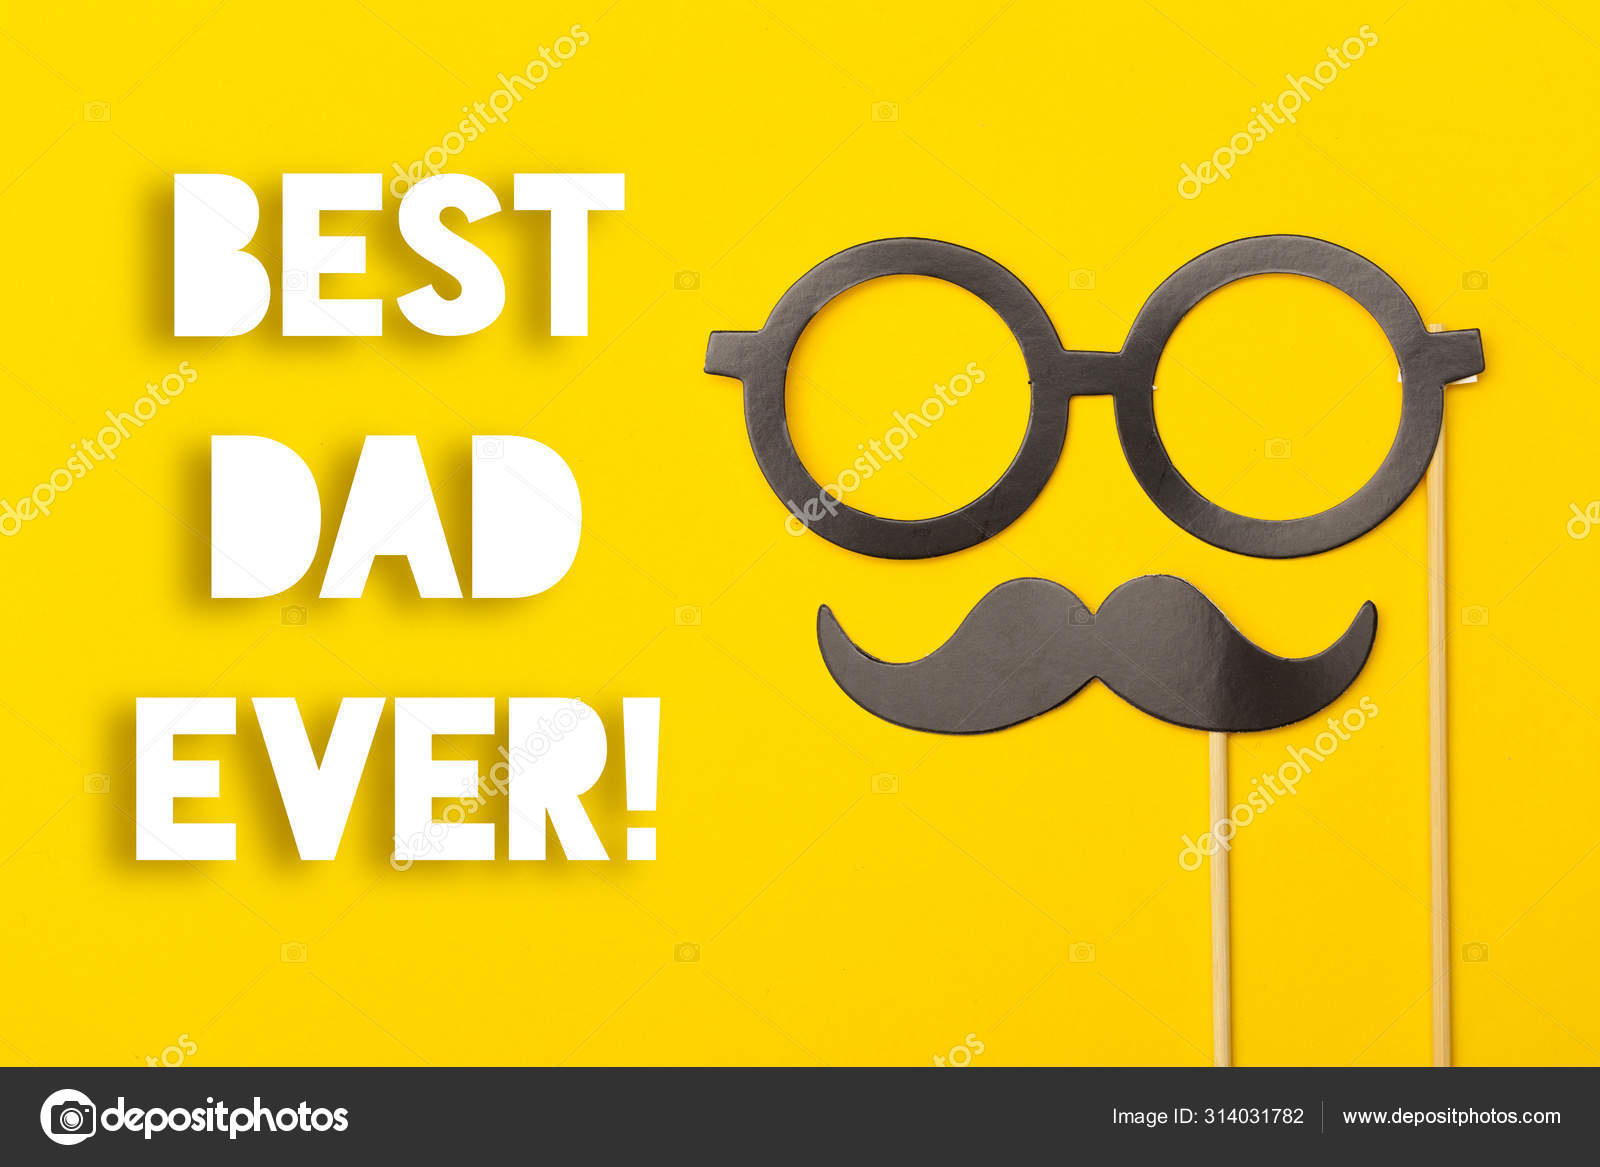 Father S Day Greeting Card Message With Mustache On A Yellow Bac Stock Photo C Inkdropcreative 314031782